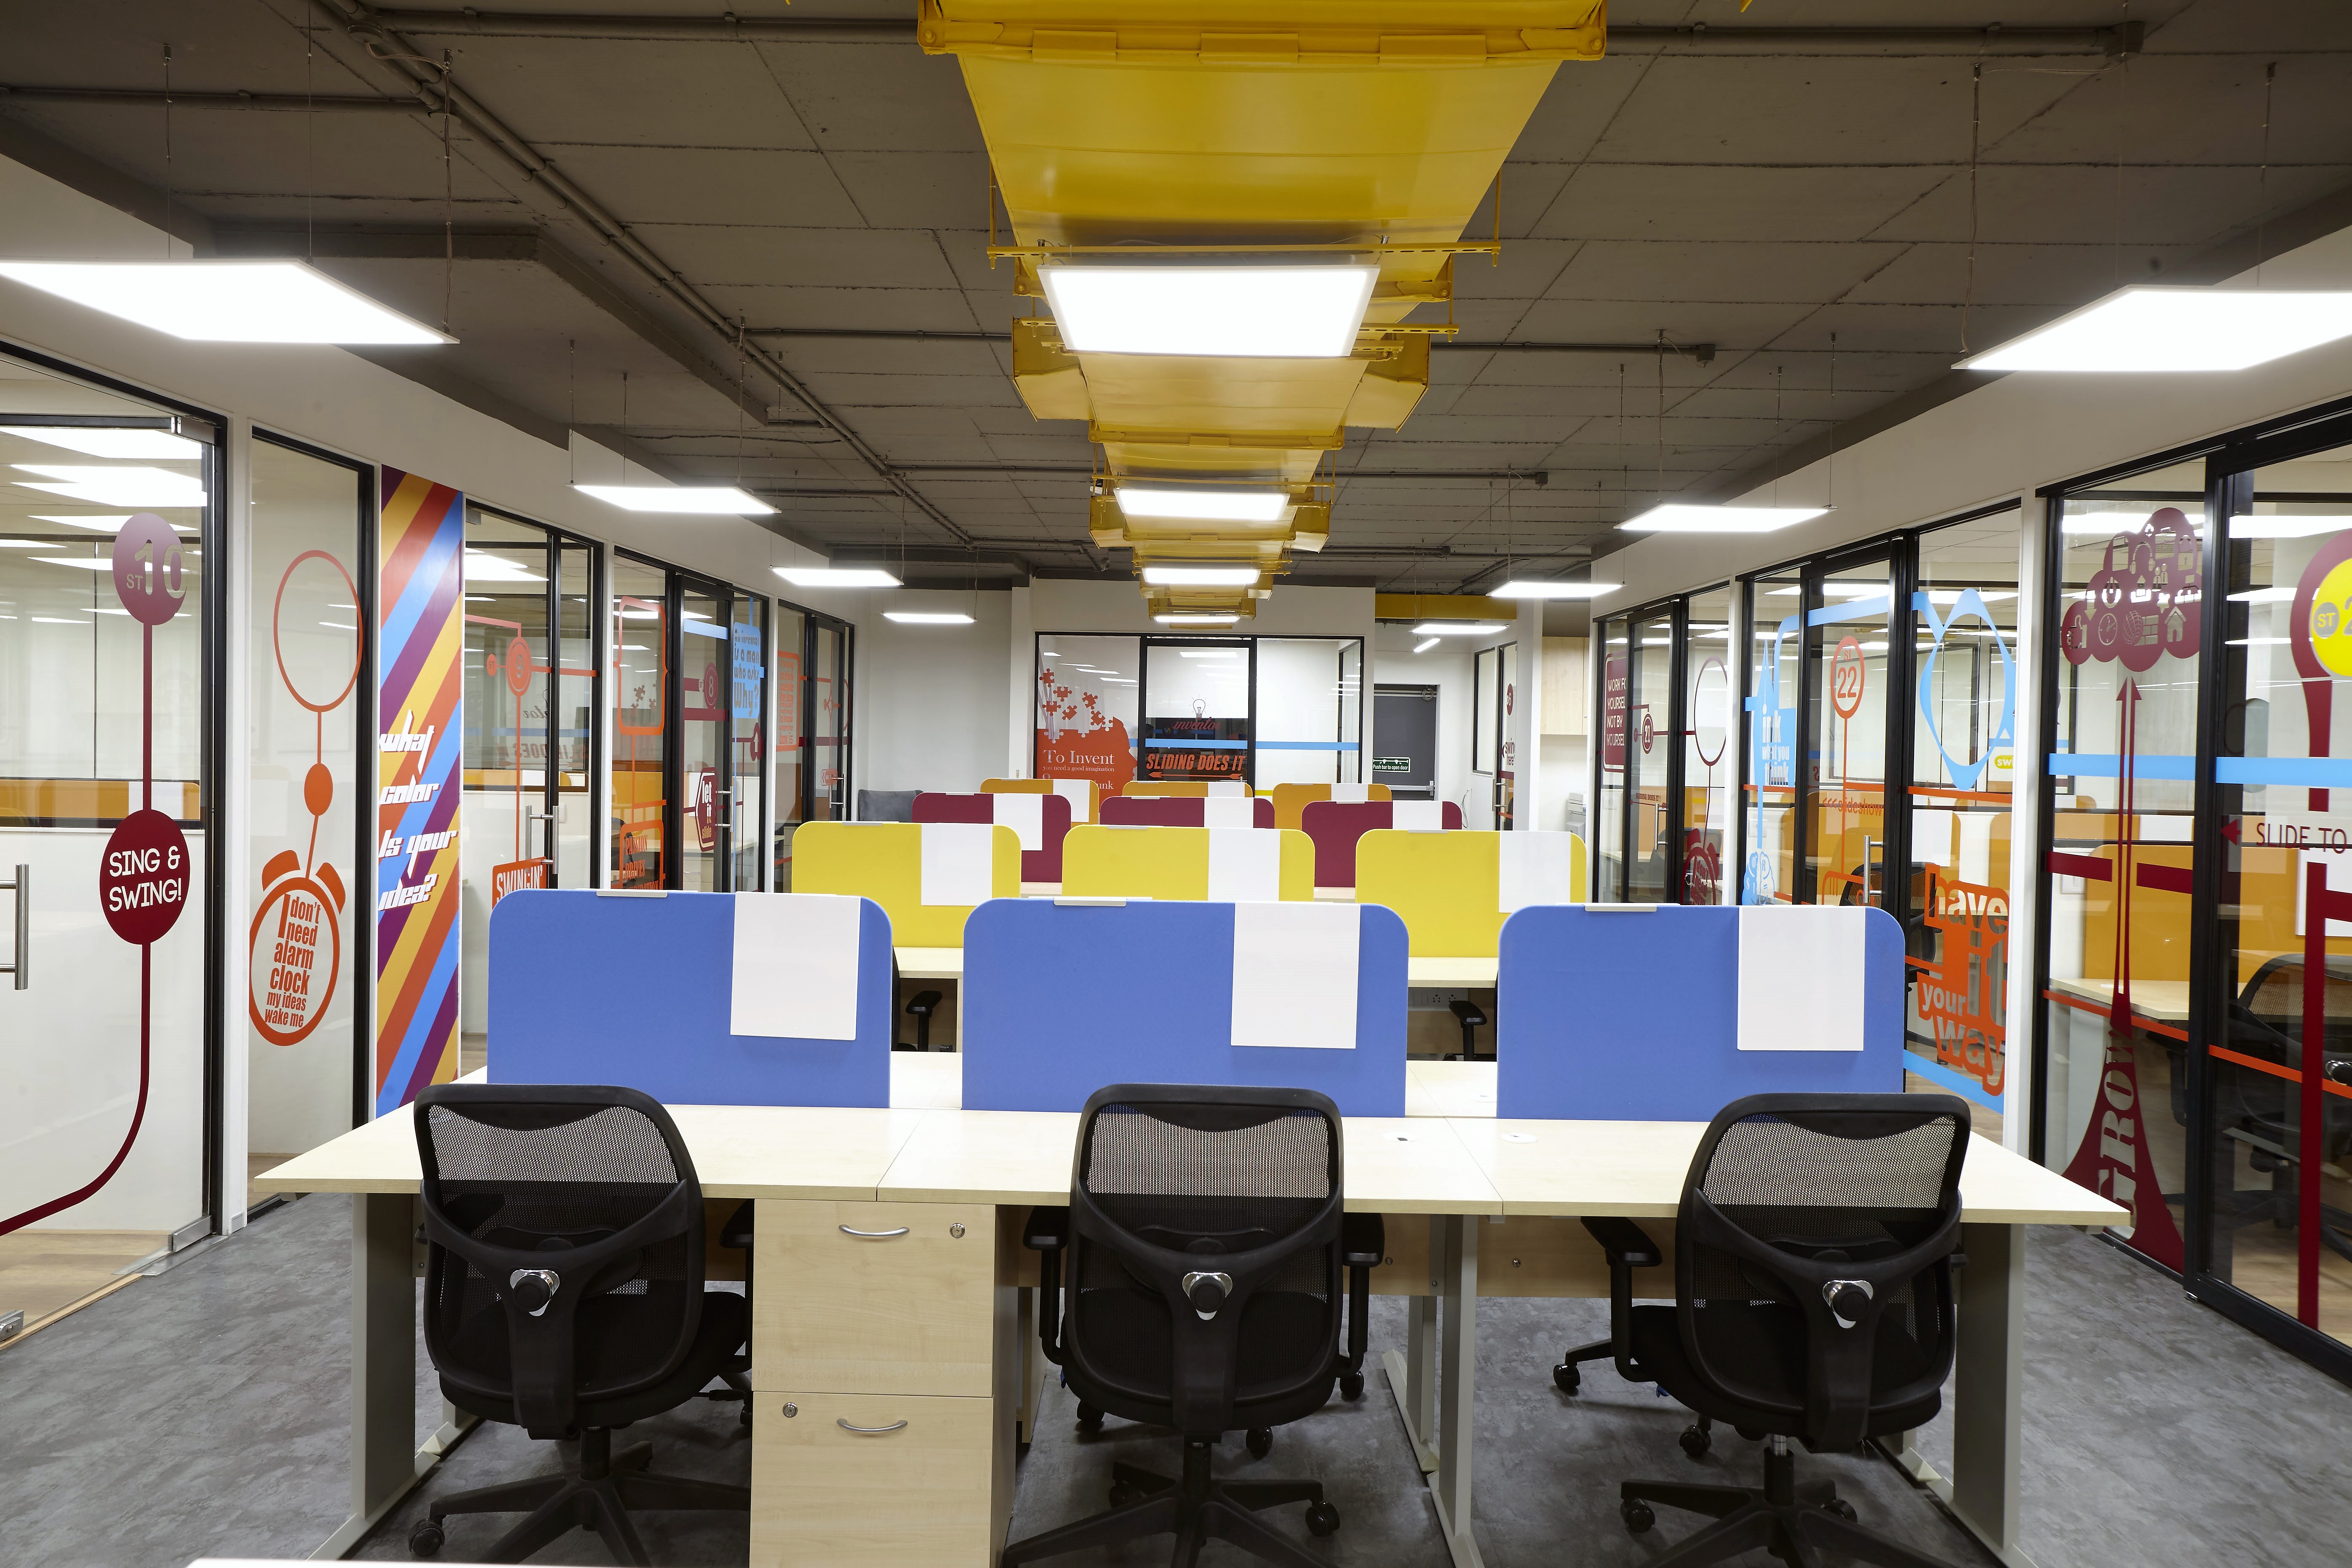 Co-working spaces attract both startups and corporates